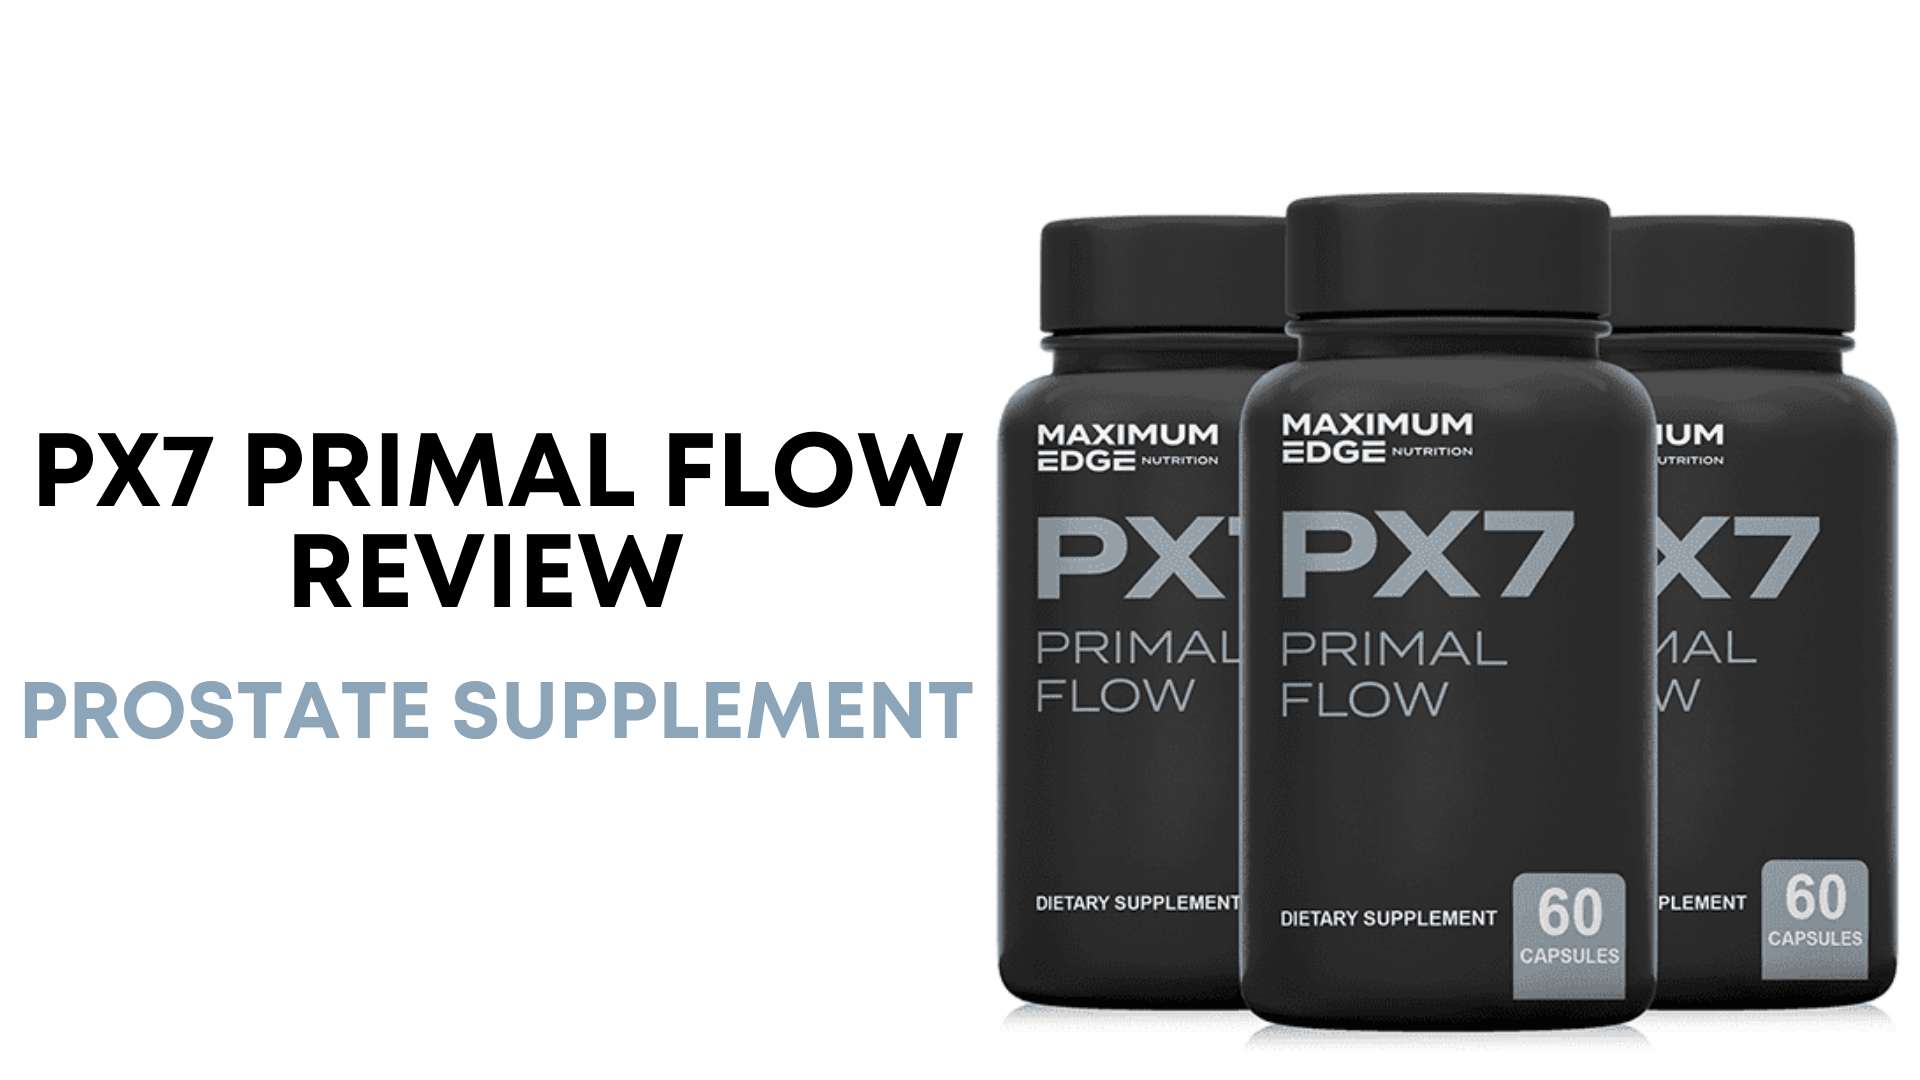 PX7 Primal Flow Reviews - Can Supplement Treat Enlarged Prostate? -